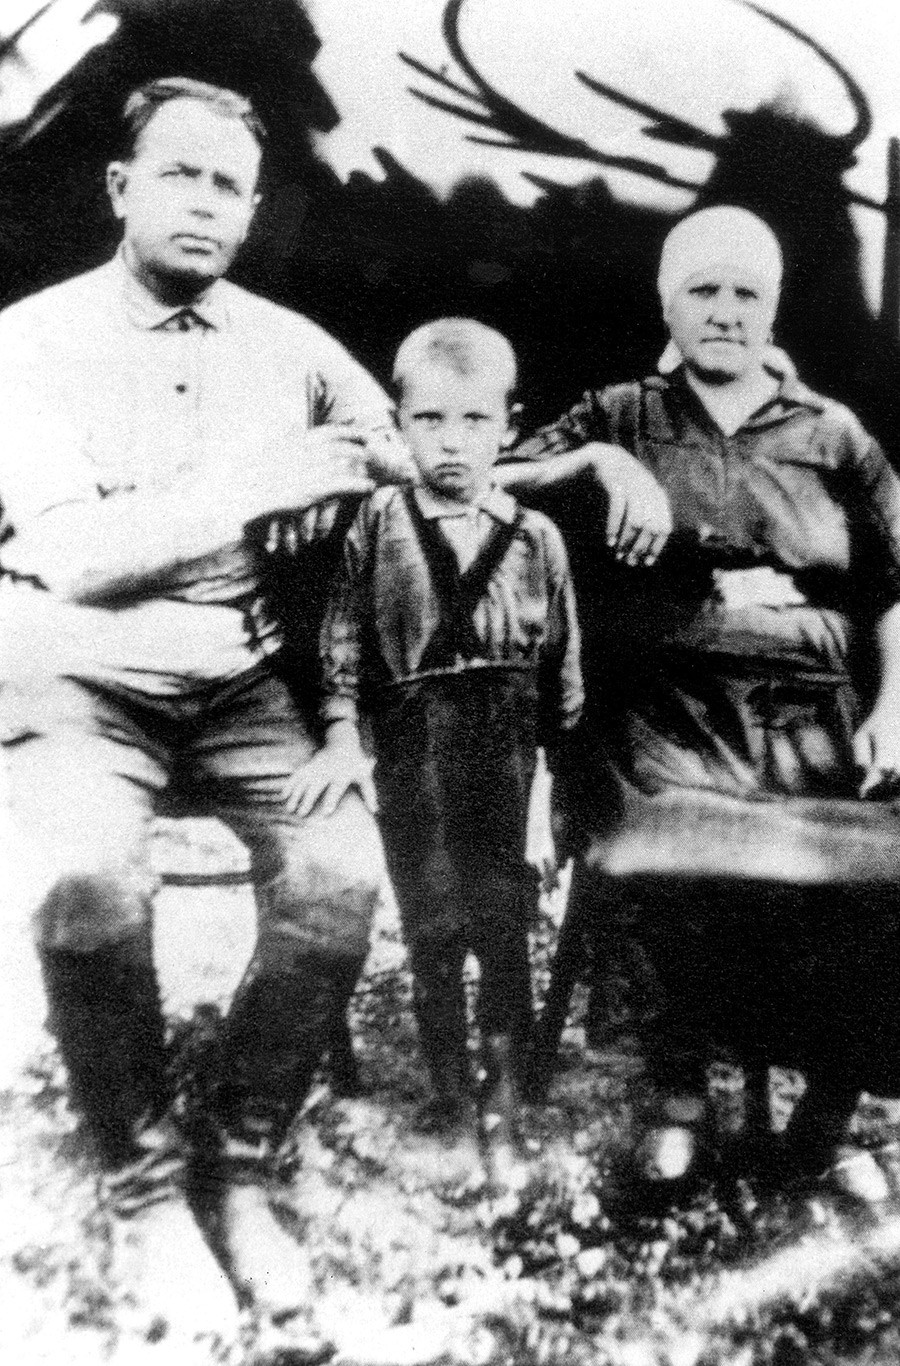 4 years old Mikhail Gorbachev